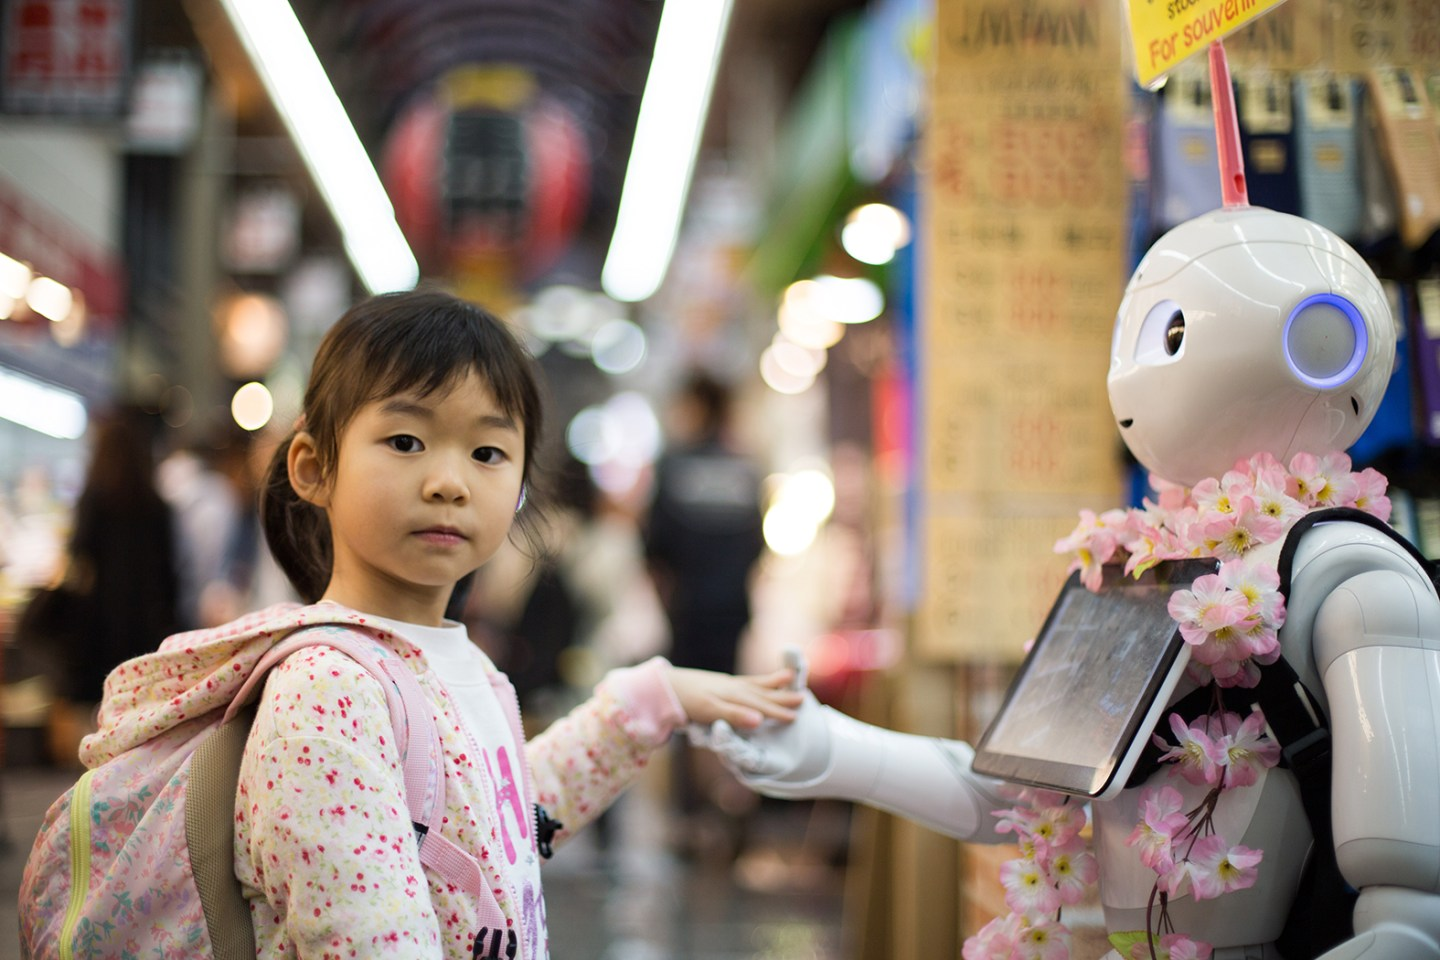 Why, Robot? The social, moral and cultural implications of AI